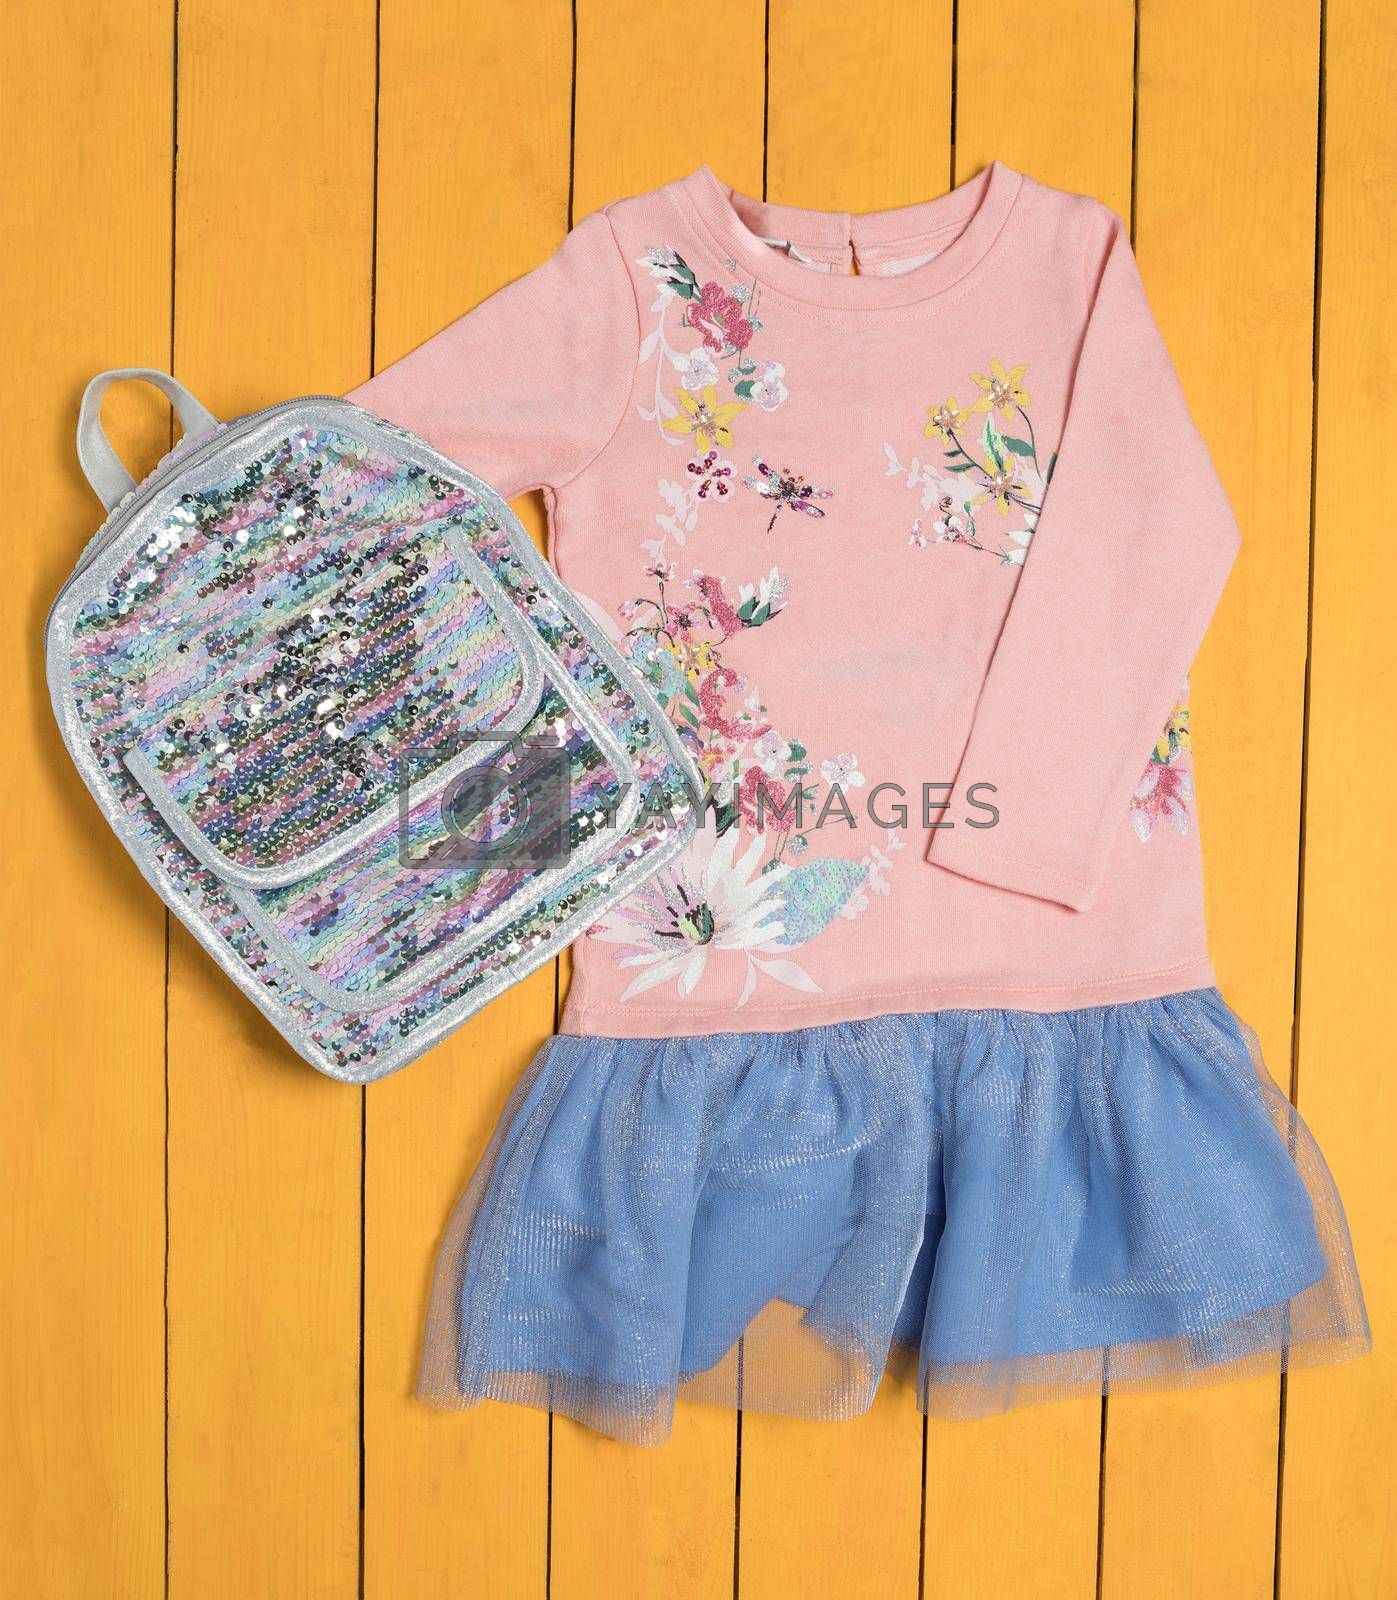 Pink girl dress with a shiny backpack top view